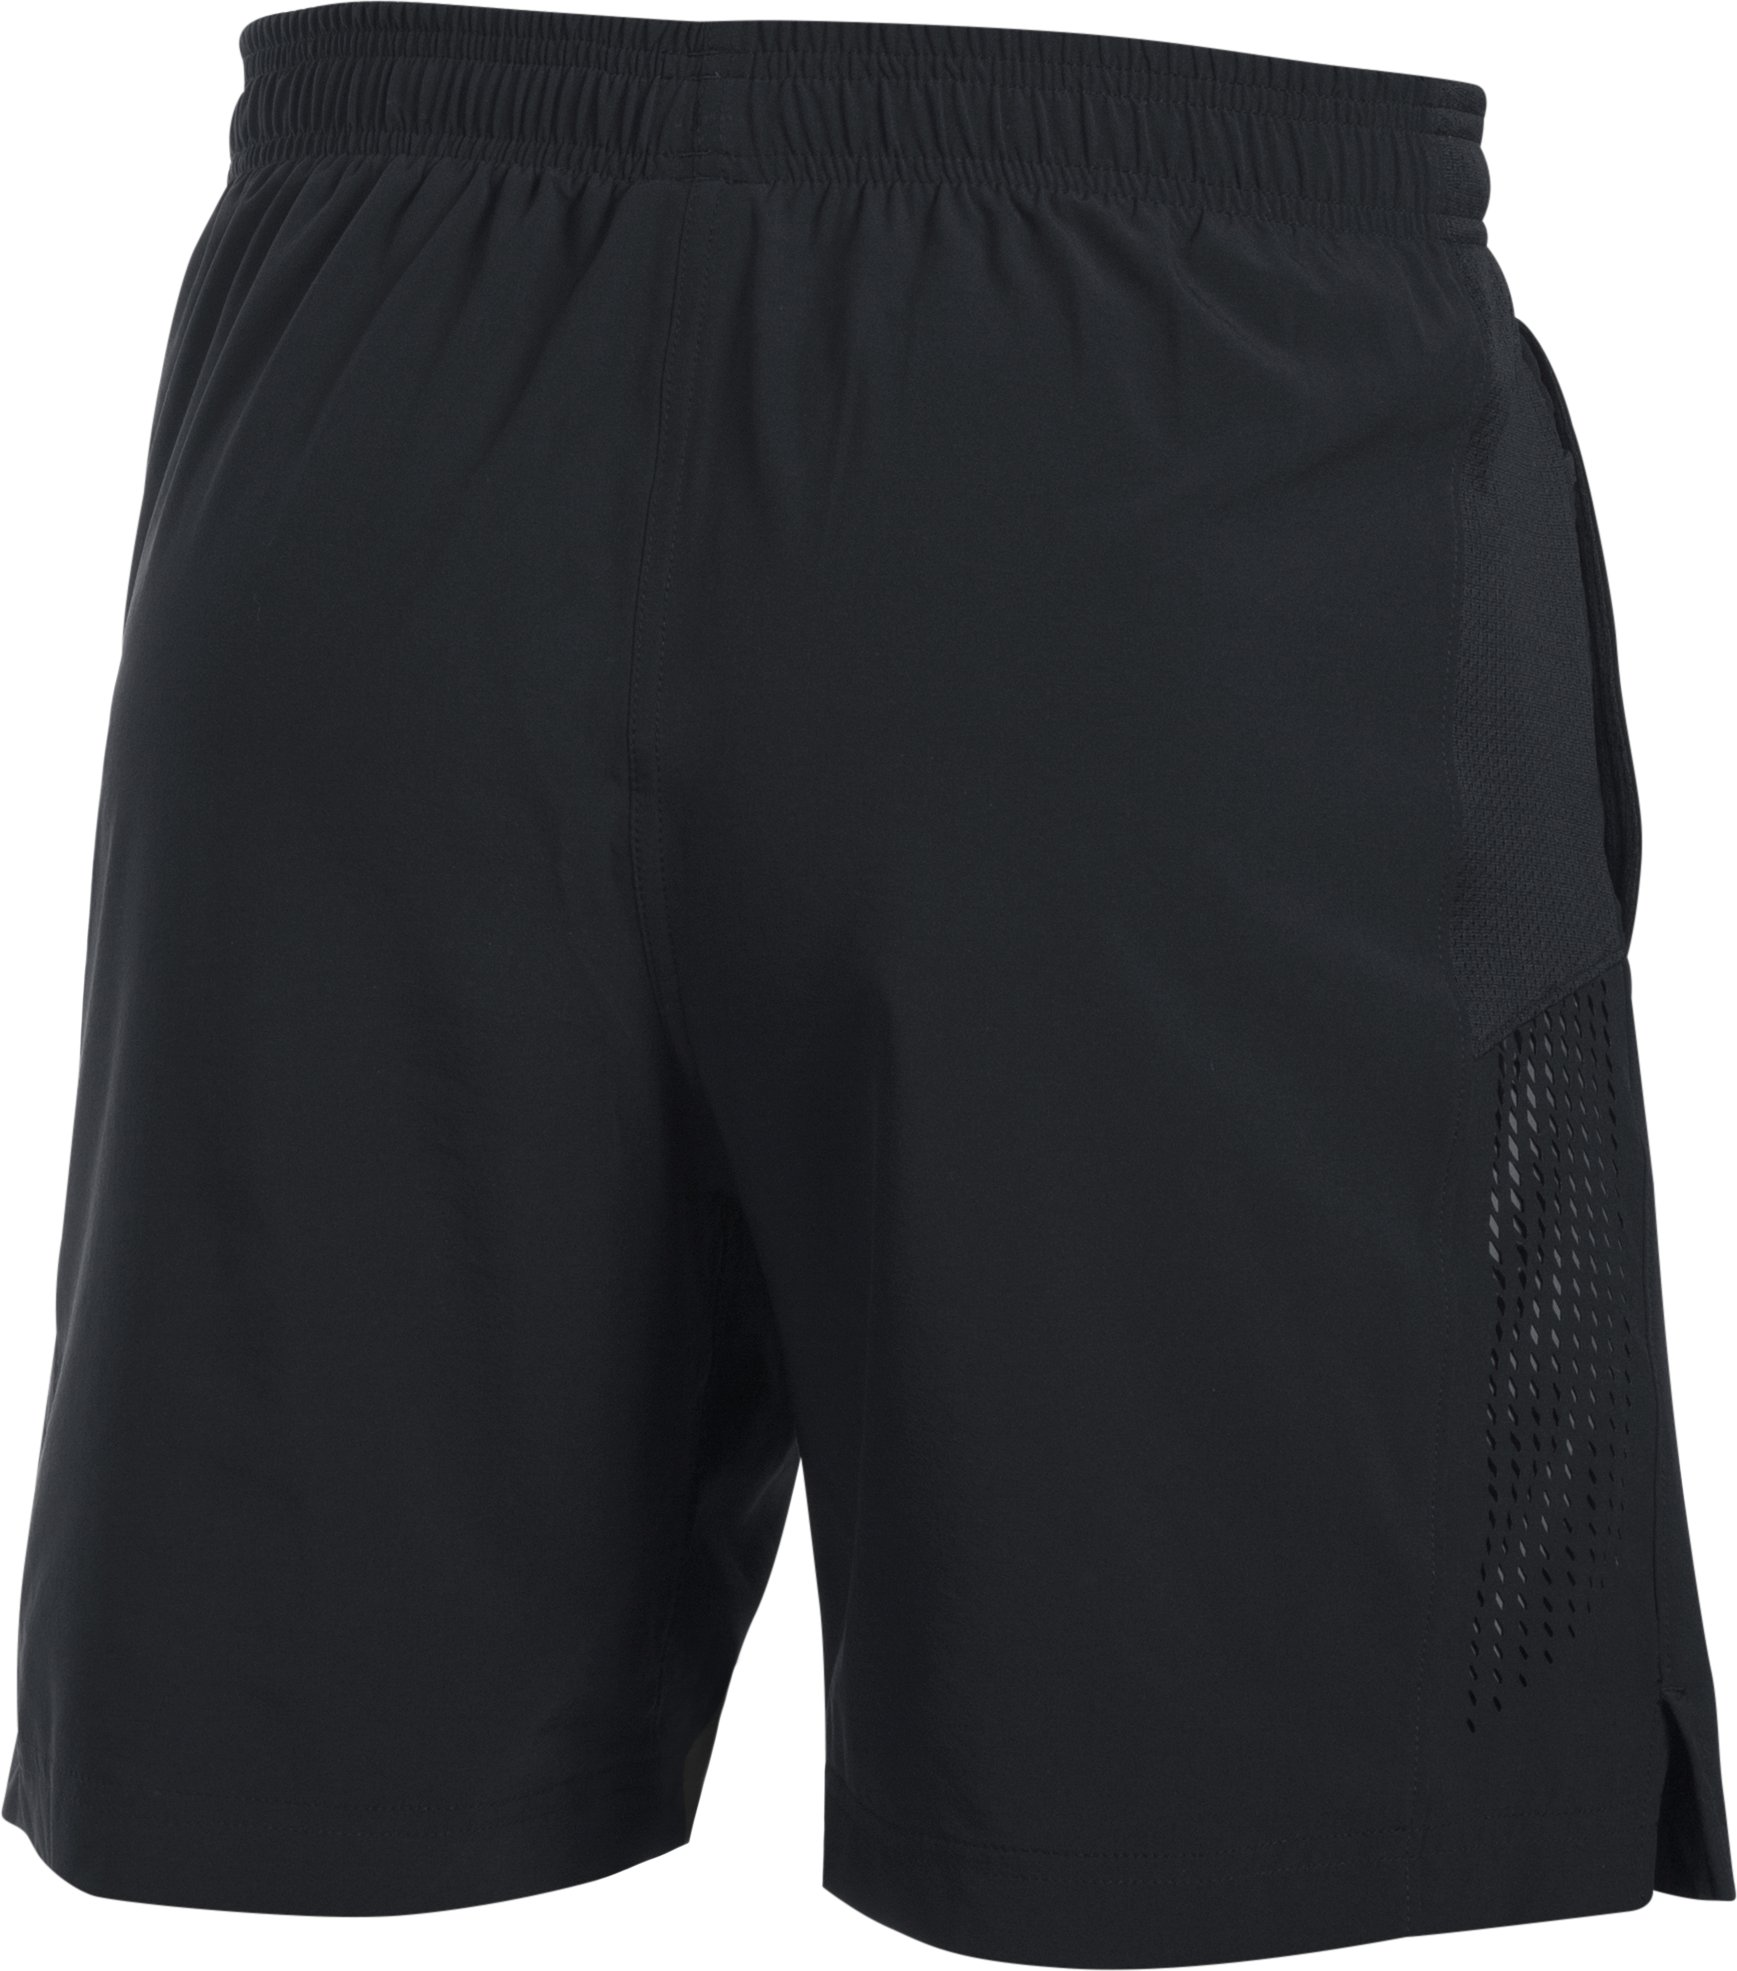 "Men's UA Performance Run 7"" Linerless Shorts, Black ,"